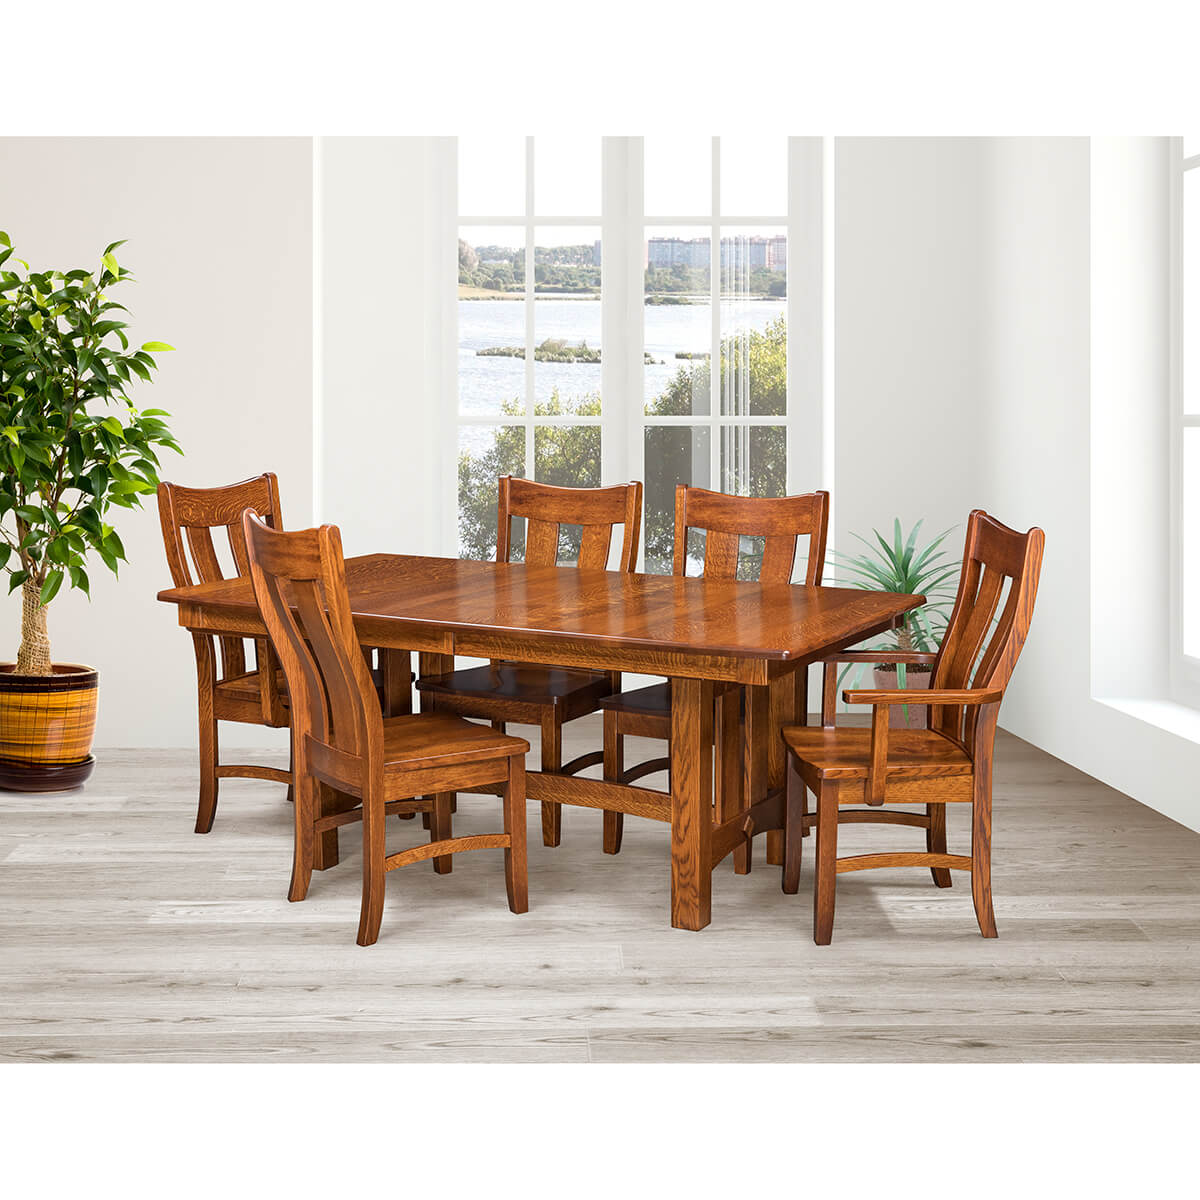 Country Shaker Trestle Dining Collection